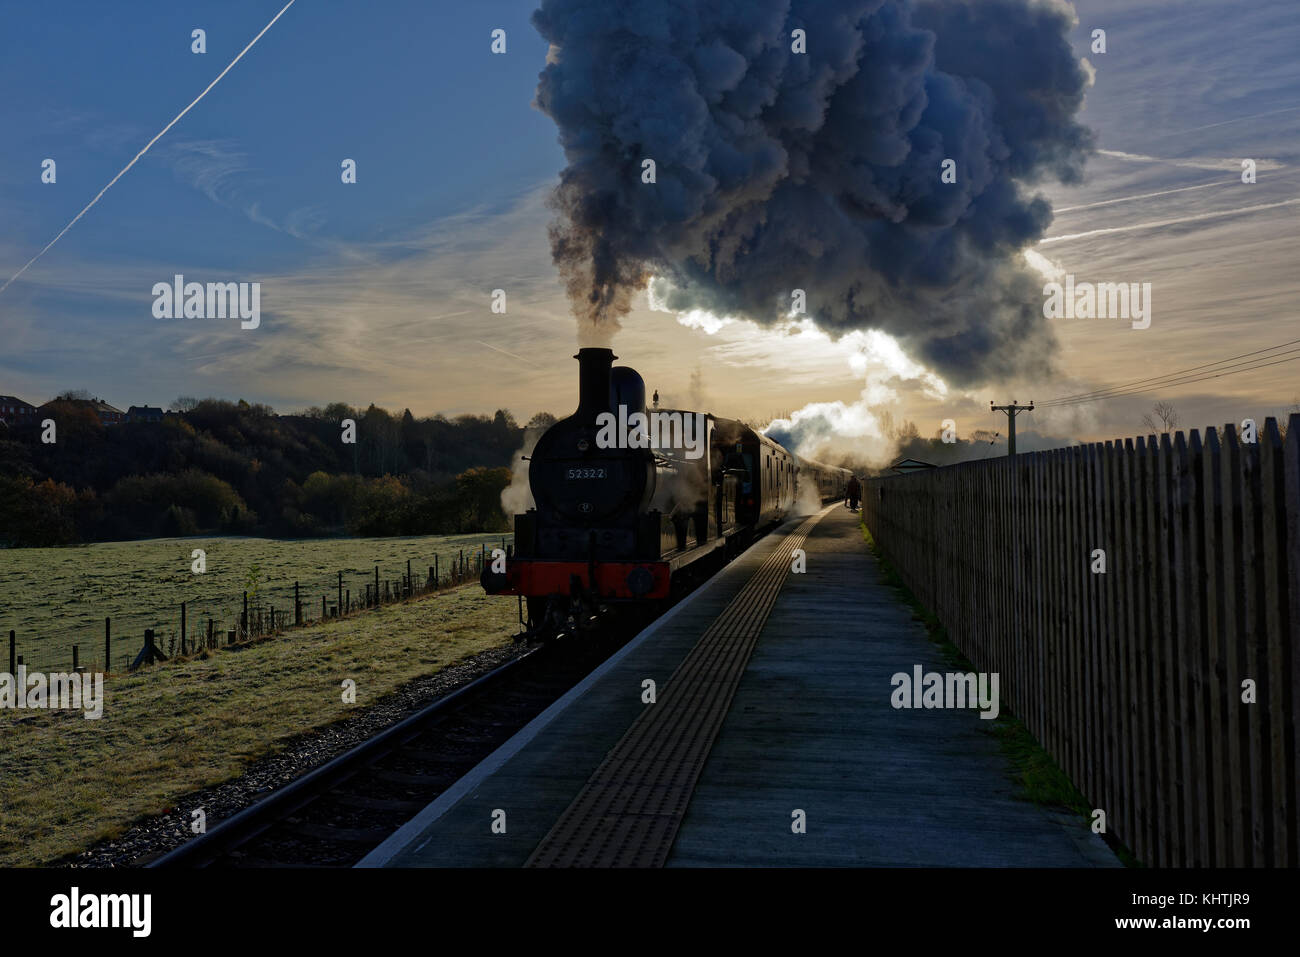 Steam train, black 0 6 0 locomotive pulling carriages arriving at burrs country park railway station on a frosty - Stock Image